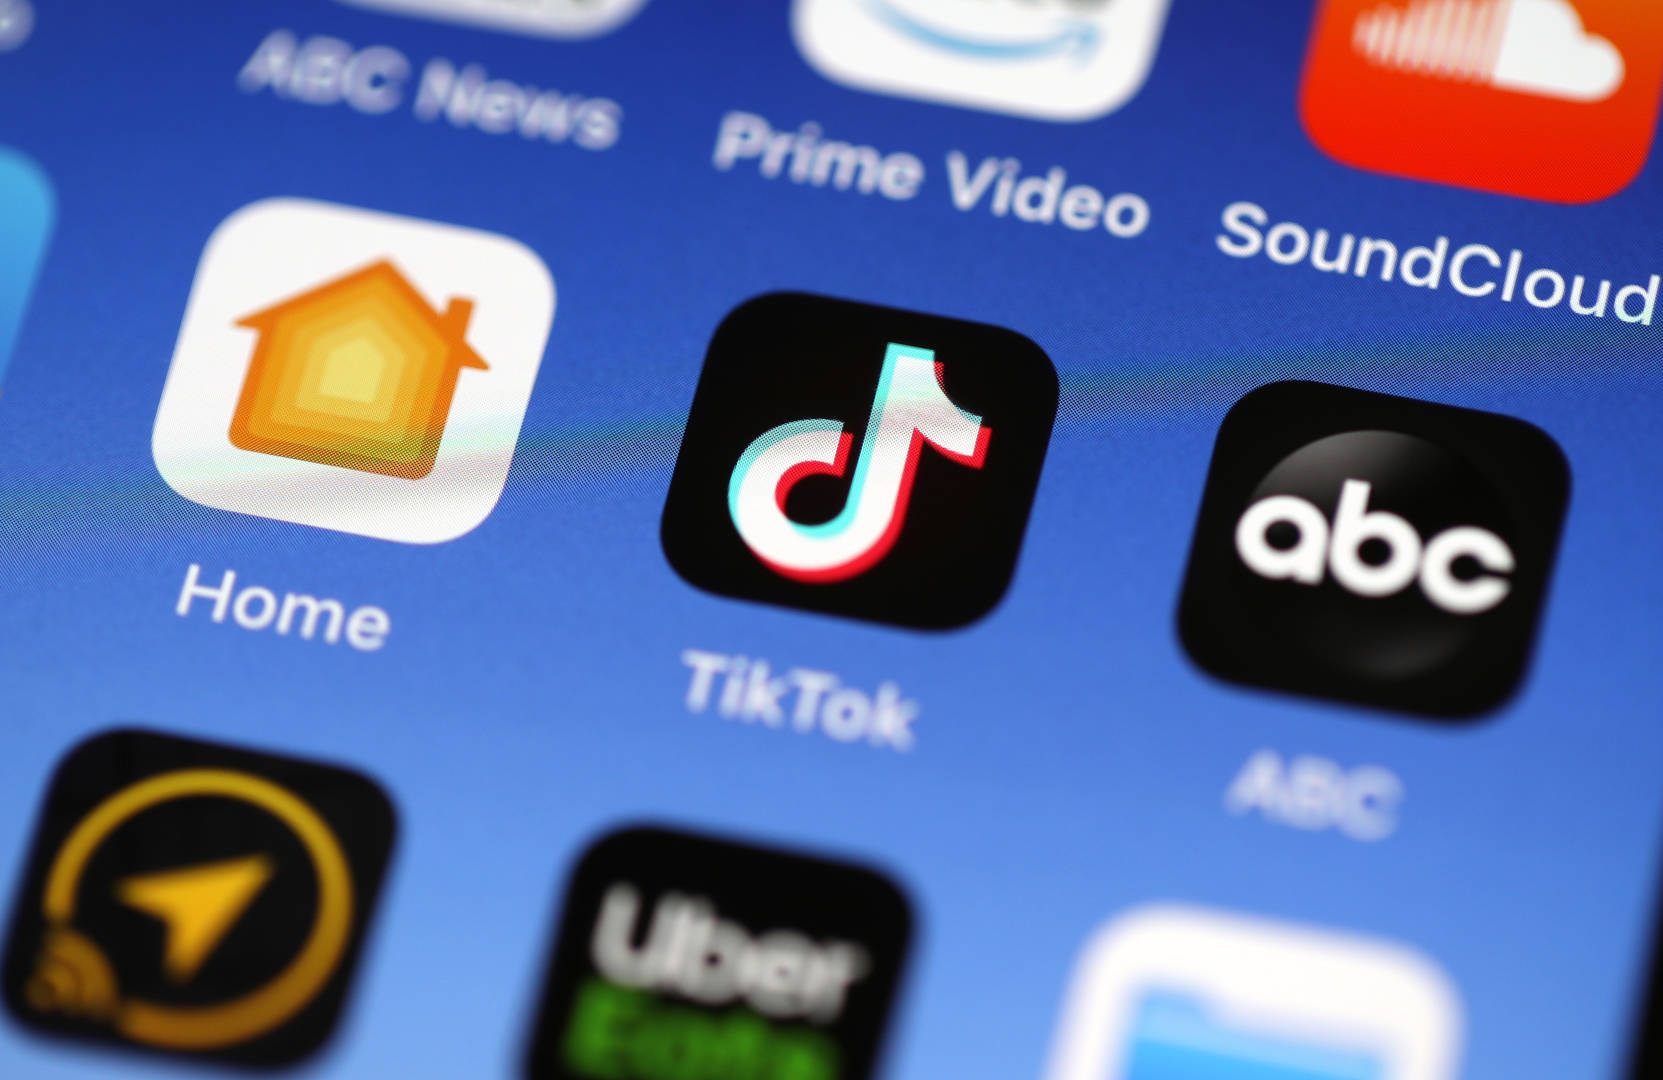 Senate Homeland Security Committee unanimously voted to ban TikTok on government devices